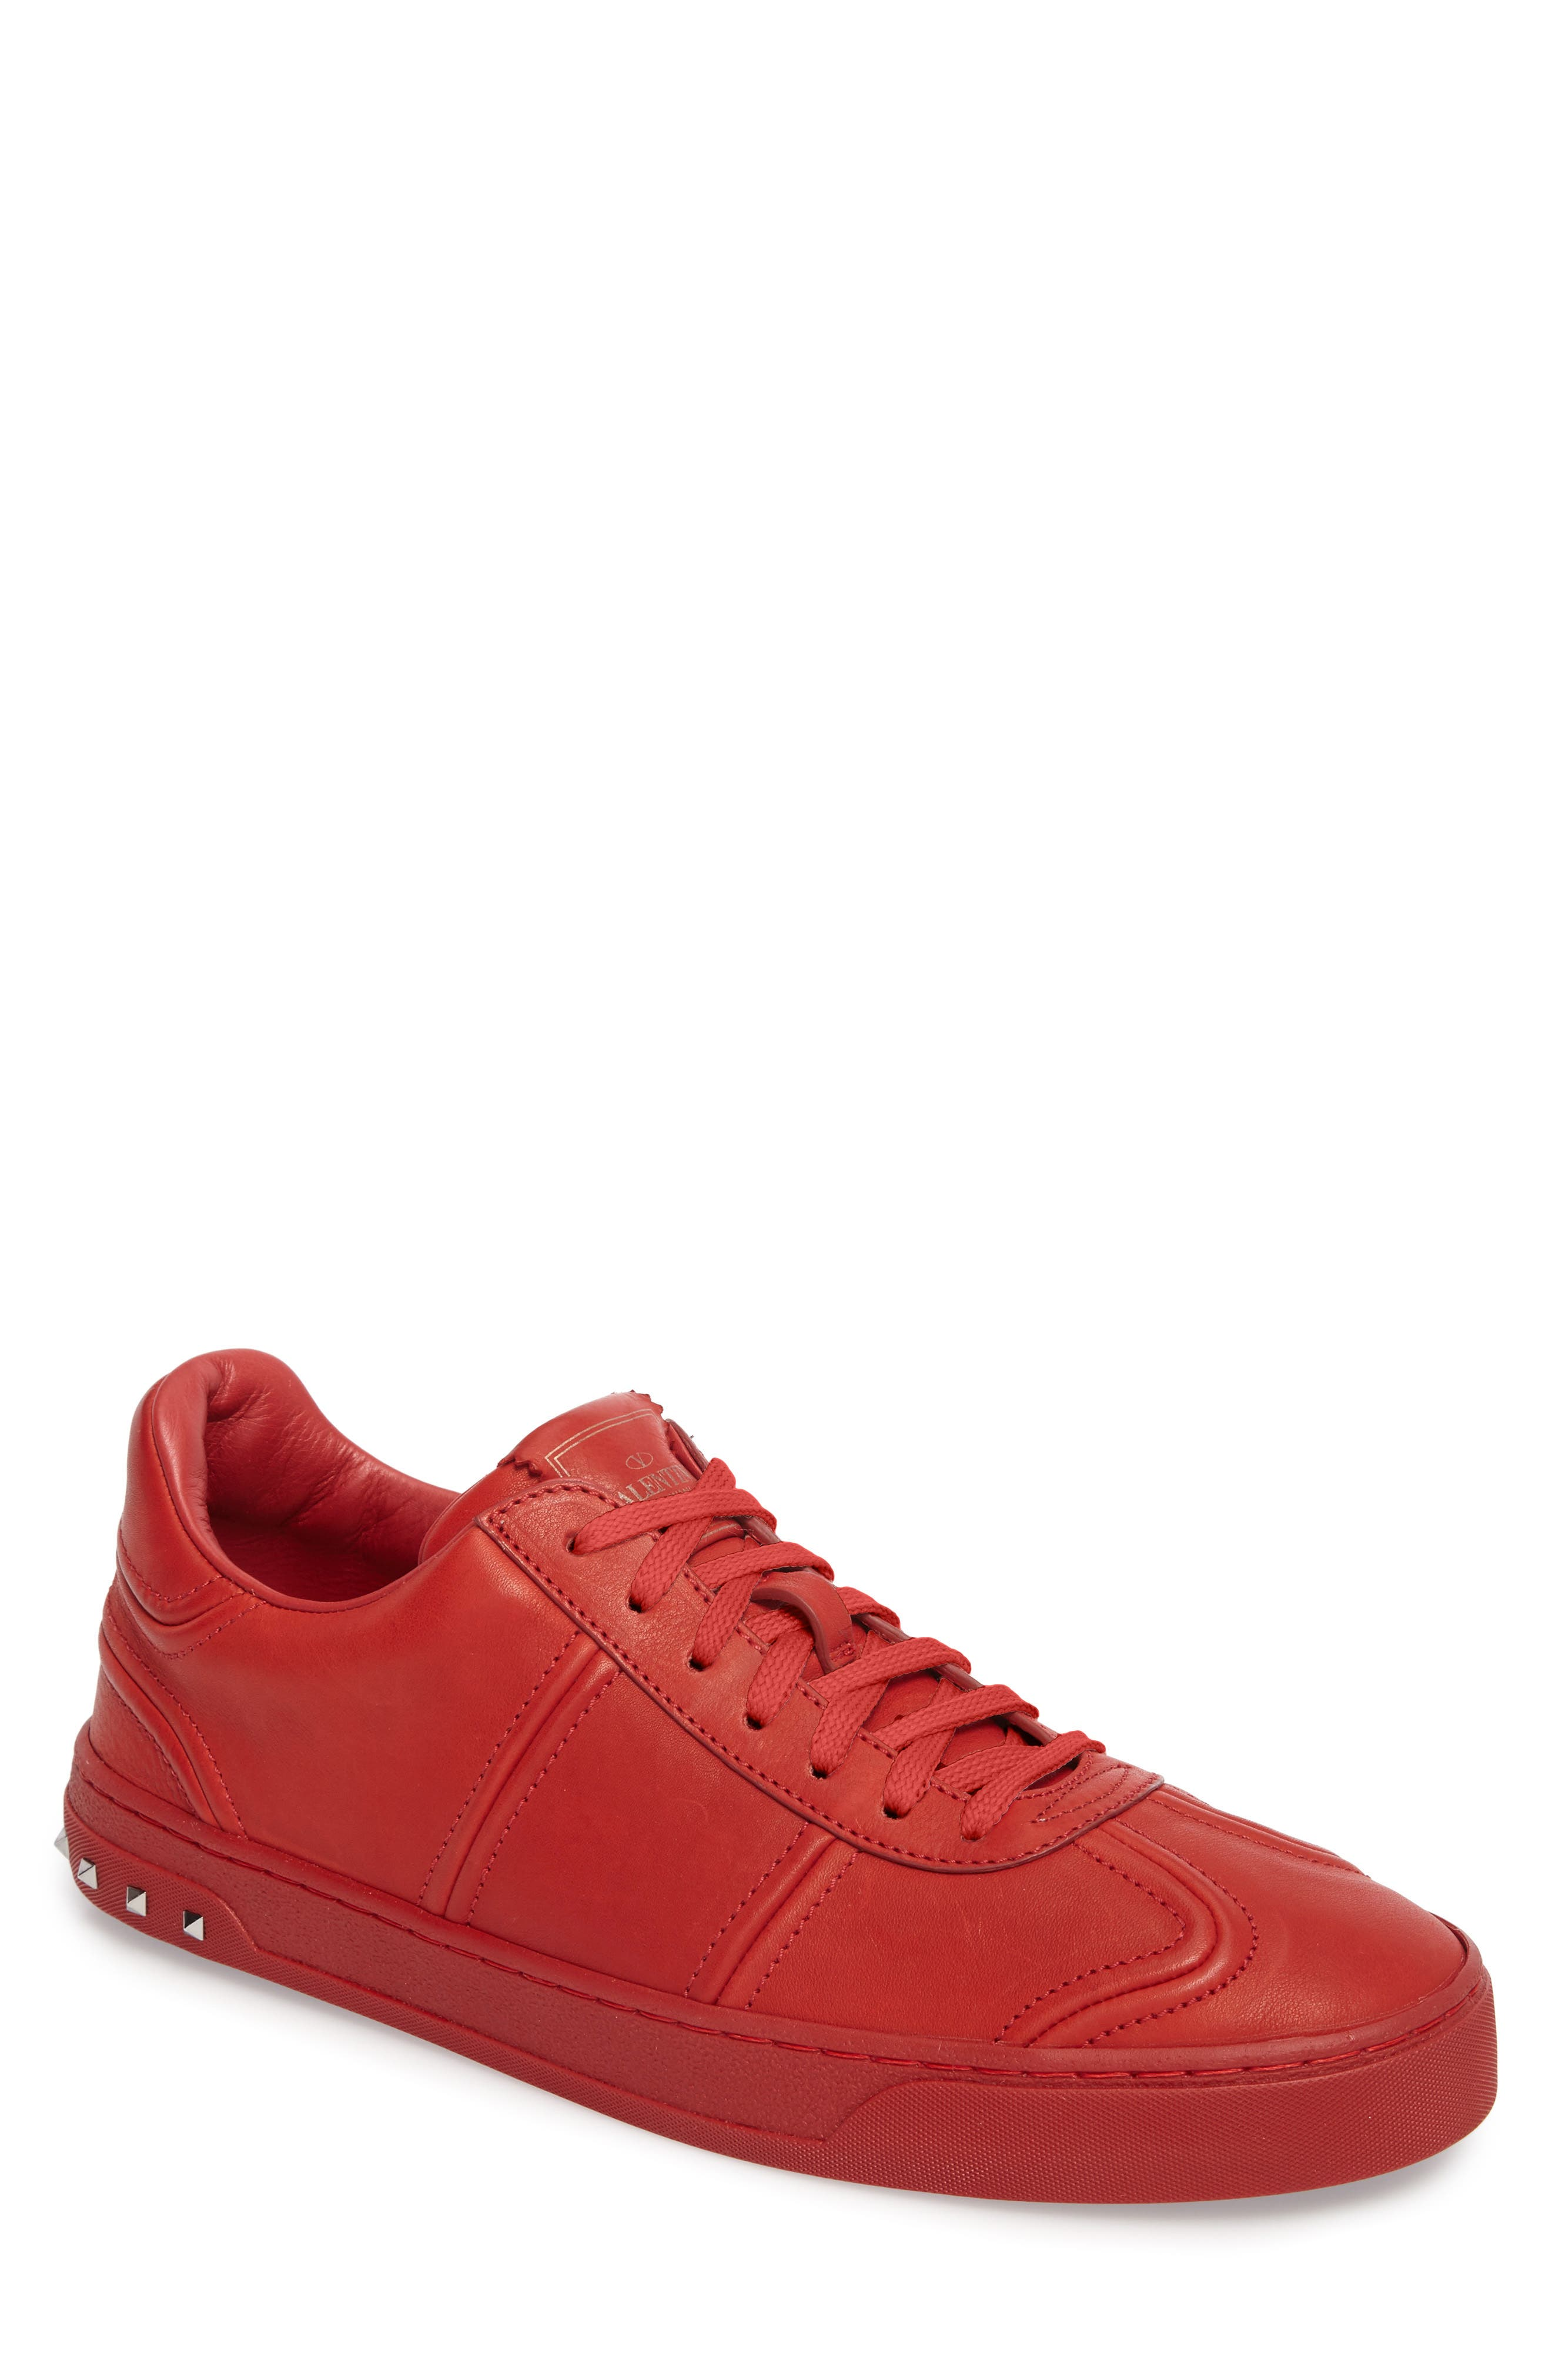 Fly Crew Sneaker,                             Main thumbnail 1, color,                             610